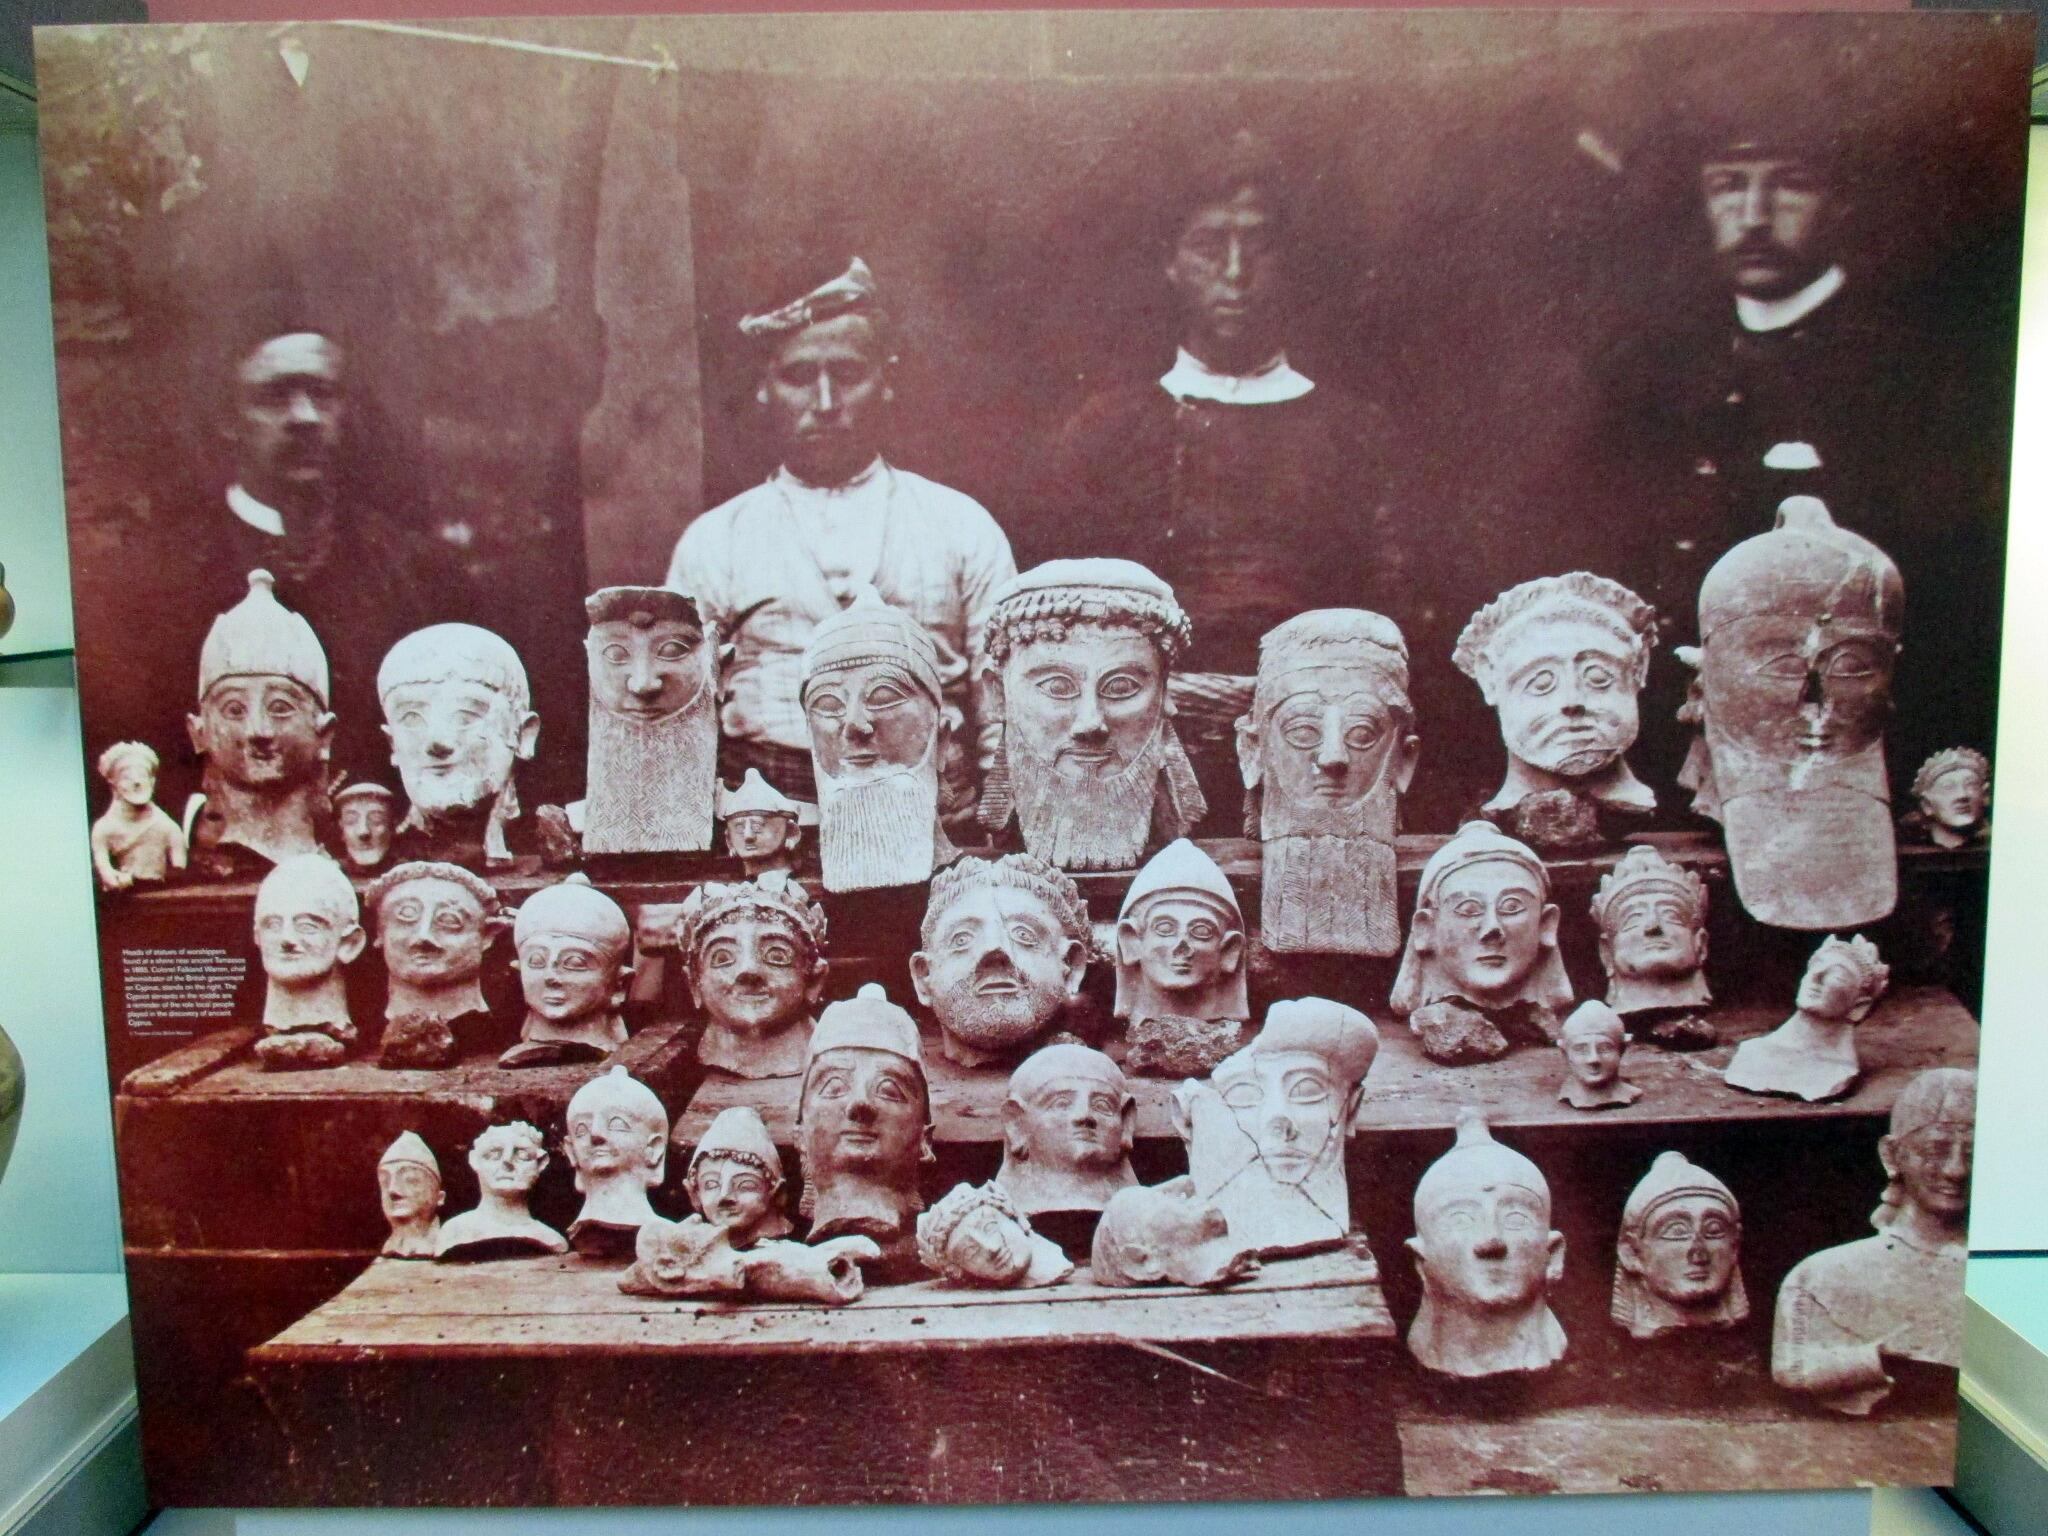 RT @OptimoPrincipi: Busts of worshippers found at shrine of Tamassos, Cyprus by Col. Falkland Warren&his assistants. #cyprus #archaeology http://t.co/nJPTXP3SQ9